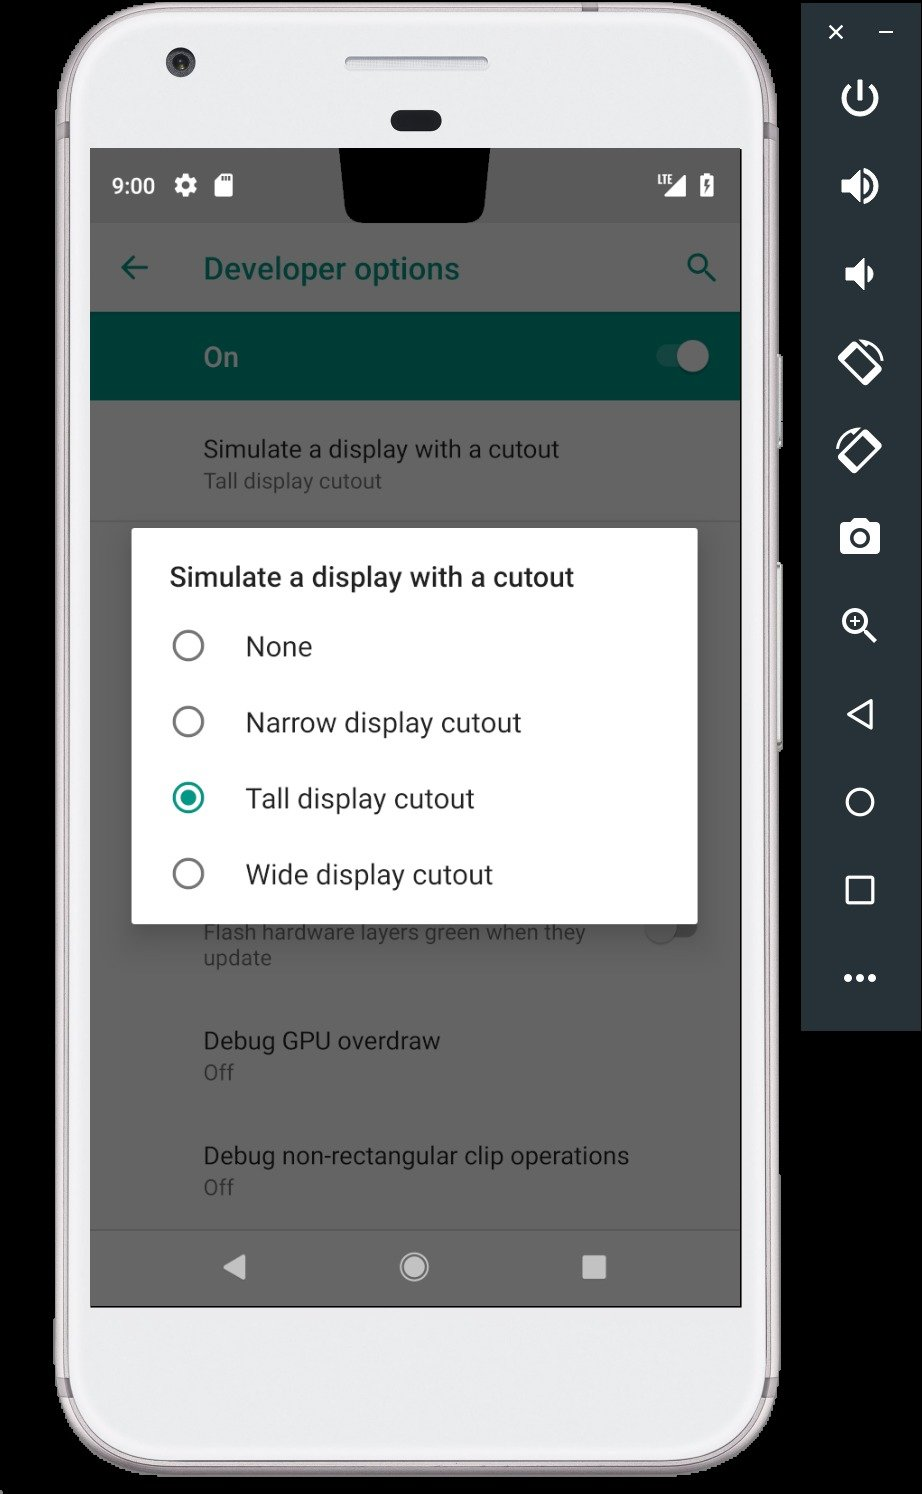 nexus2cee android p emulator cutout